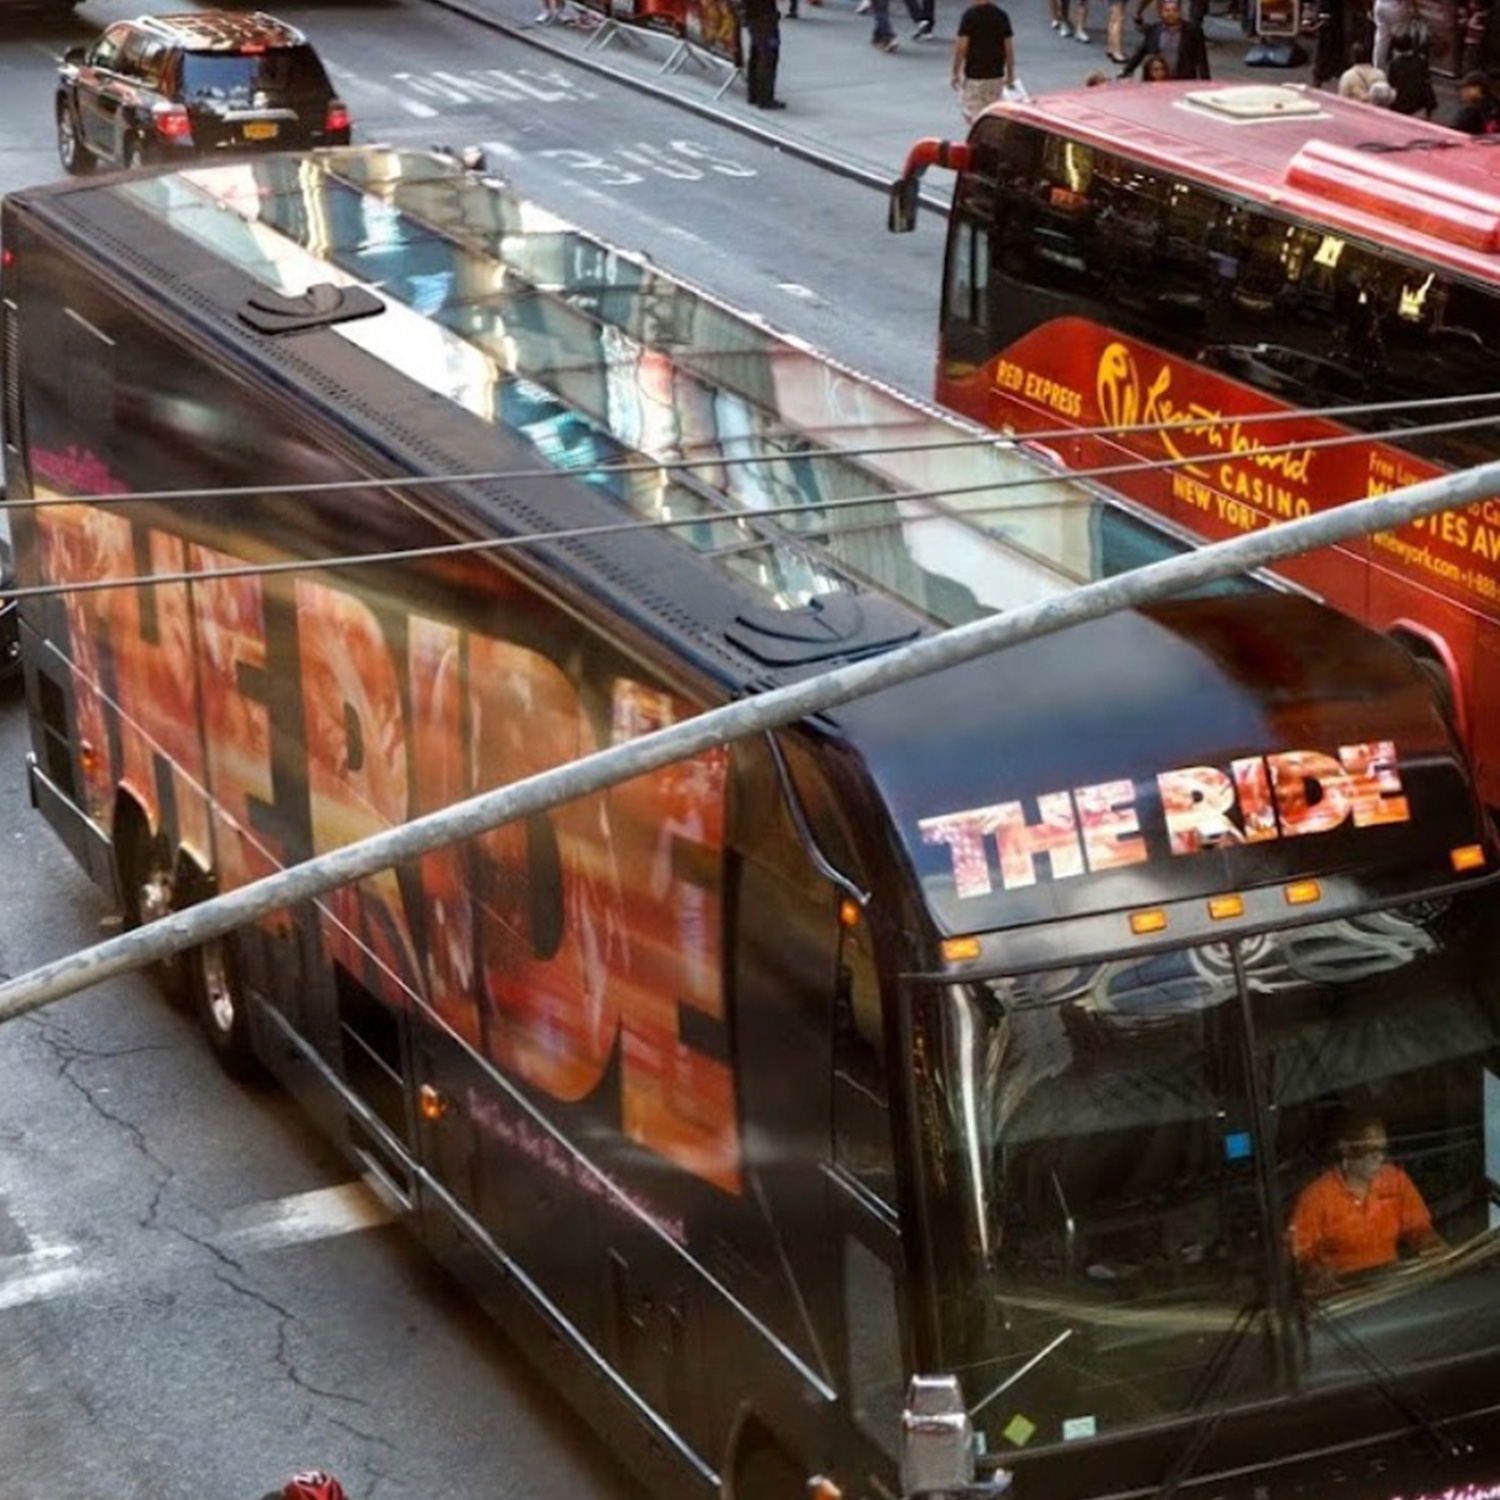 THE RIDE (NYC)